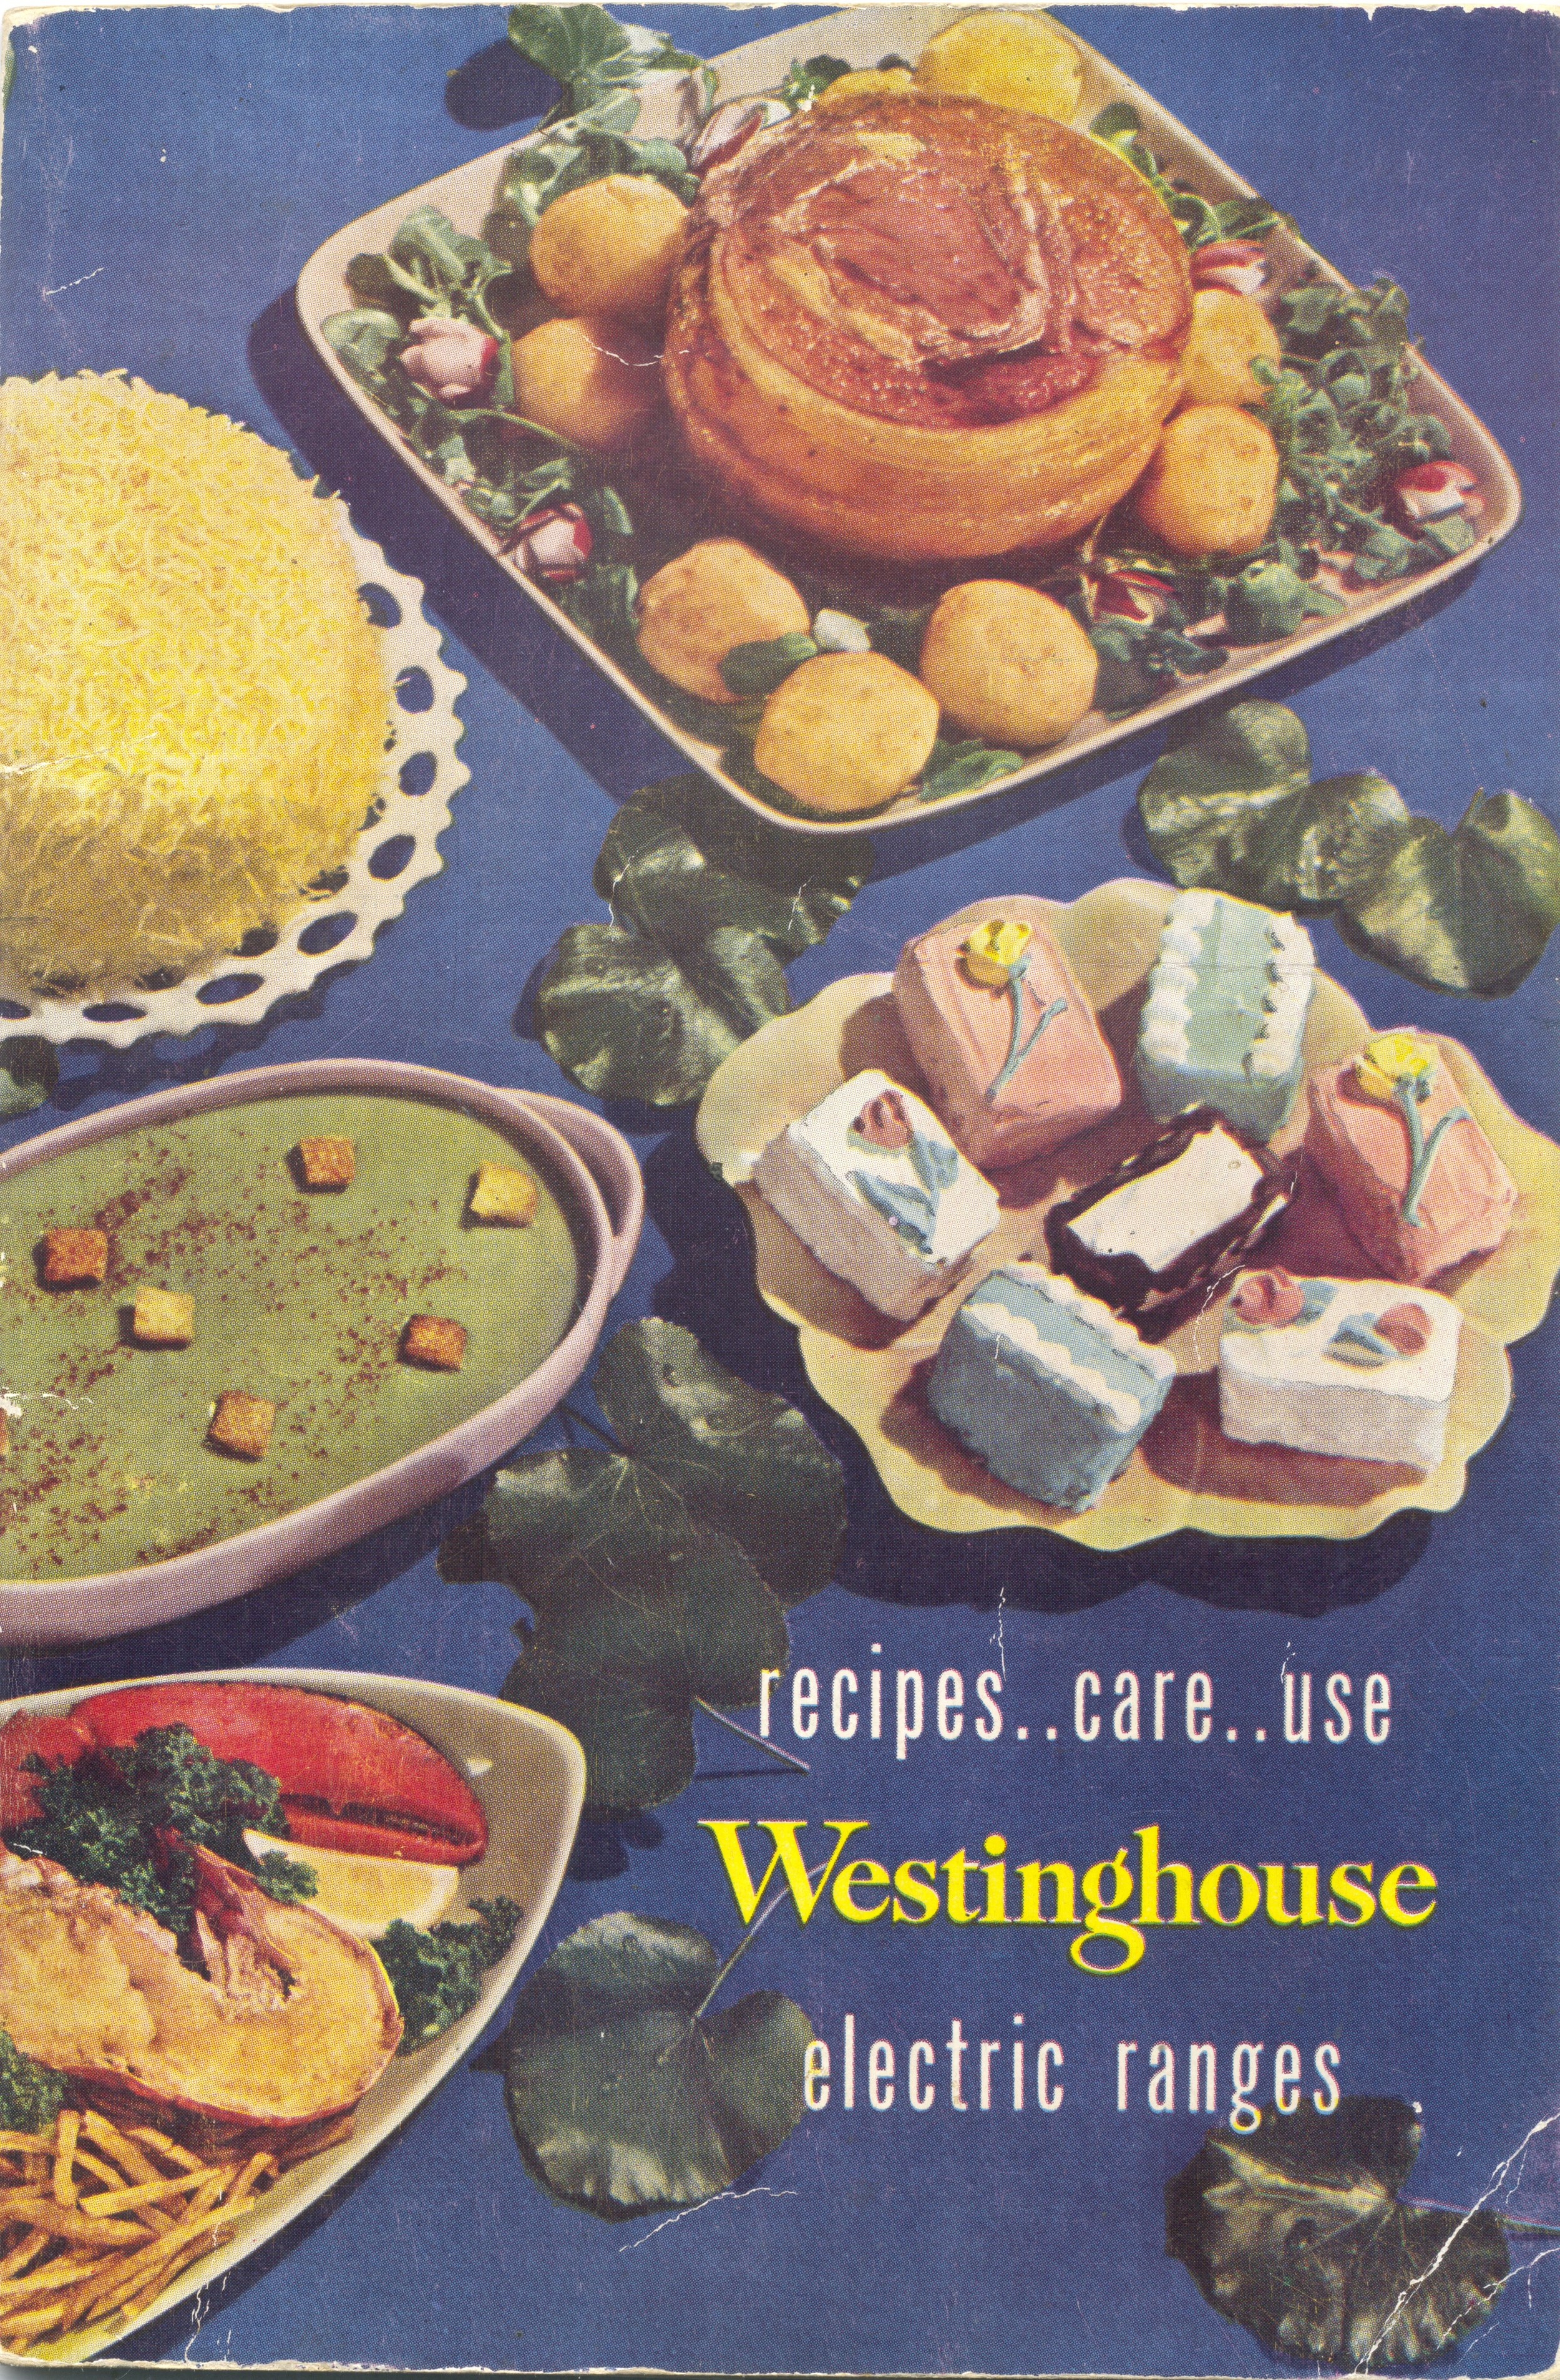 1949 Westinghouse electric range booklet. You can tell a lot about the popular foods of an era in booklets like this.